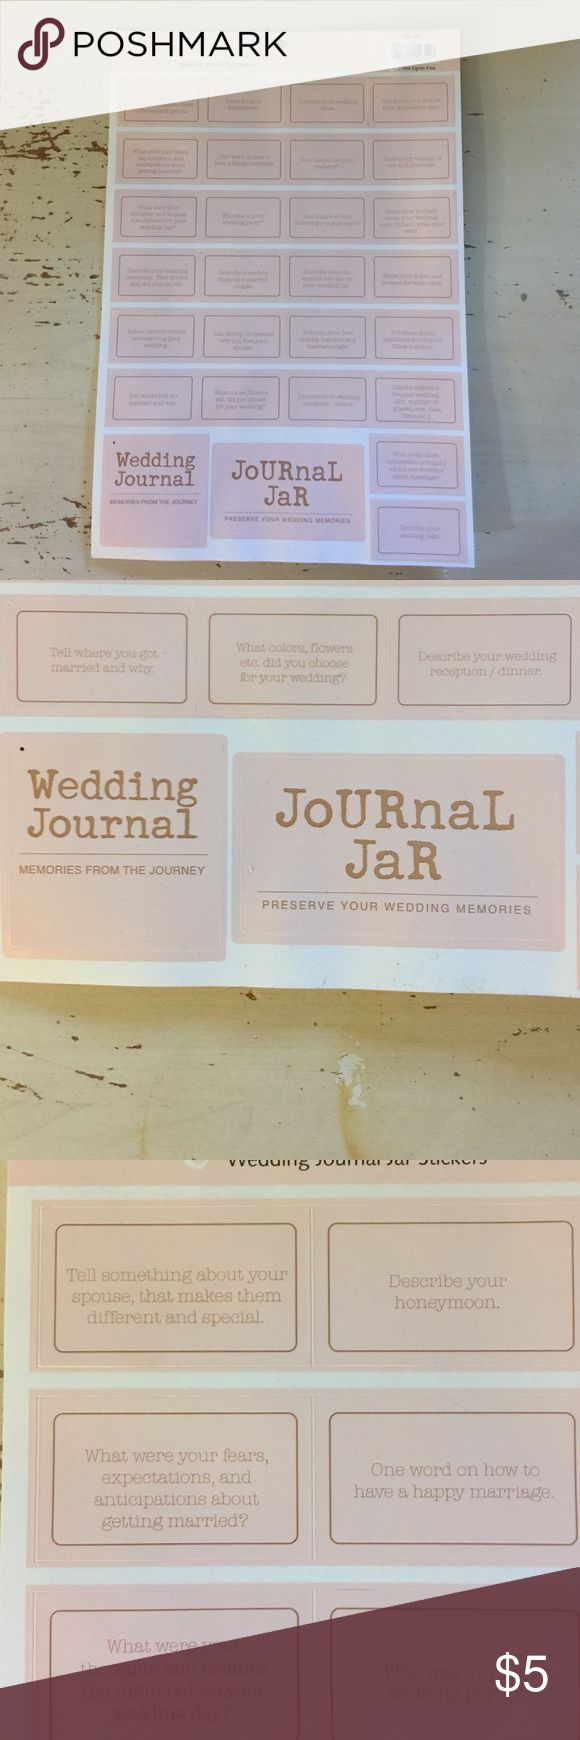 Scrapbook Wedding Journal or Jar This is an activity you make for your wedding. You make for yourself or as a gift. Decorate a glass mason jar, with the Journal Jar on top or on the front. Make cards & put each sticker on, and place in the jar. Then design a Wedding Journal, where you answer the questions taken from the jar. Put the Wedding Journal in the front. See photos for some of the questions, memories. Rusty Pickle Other